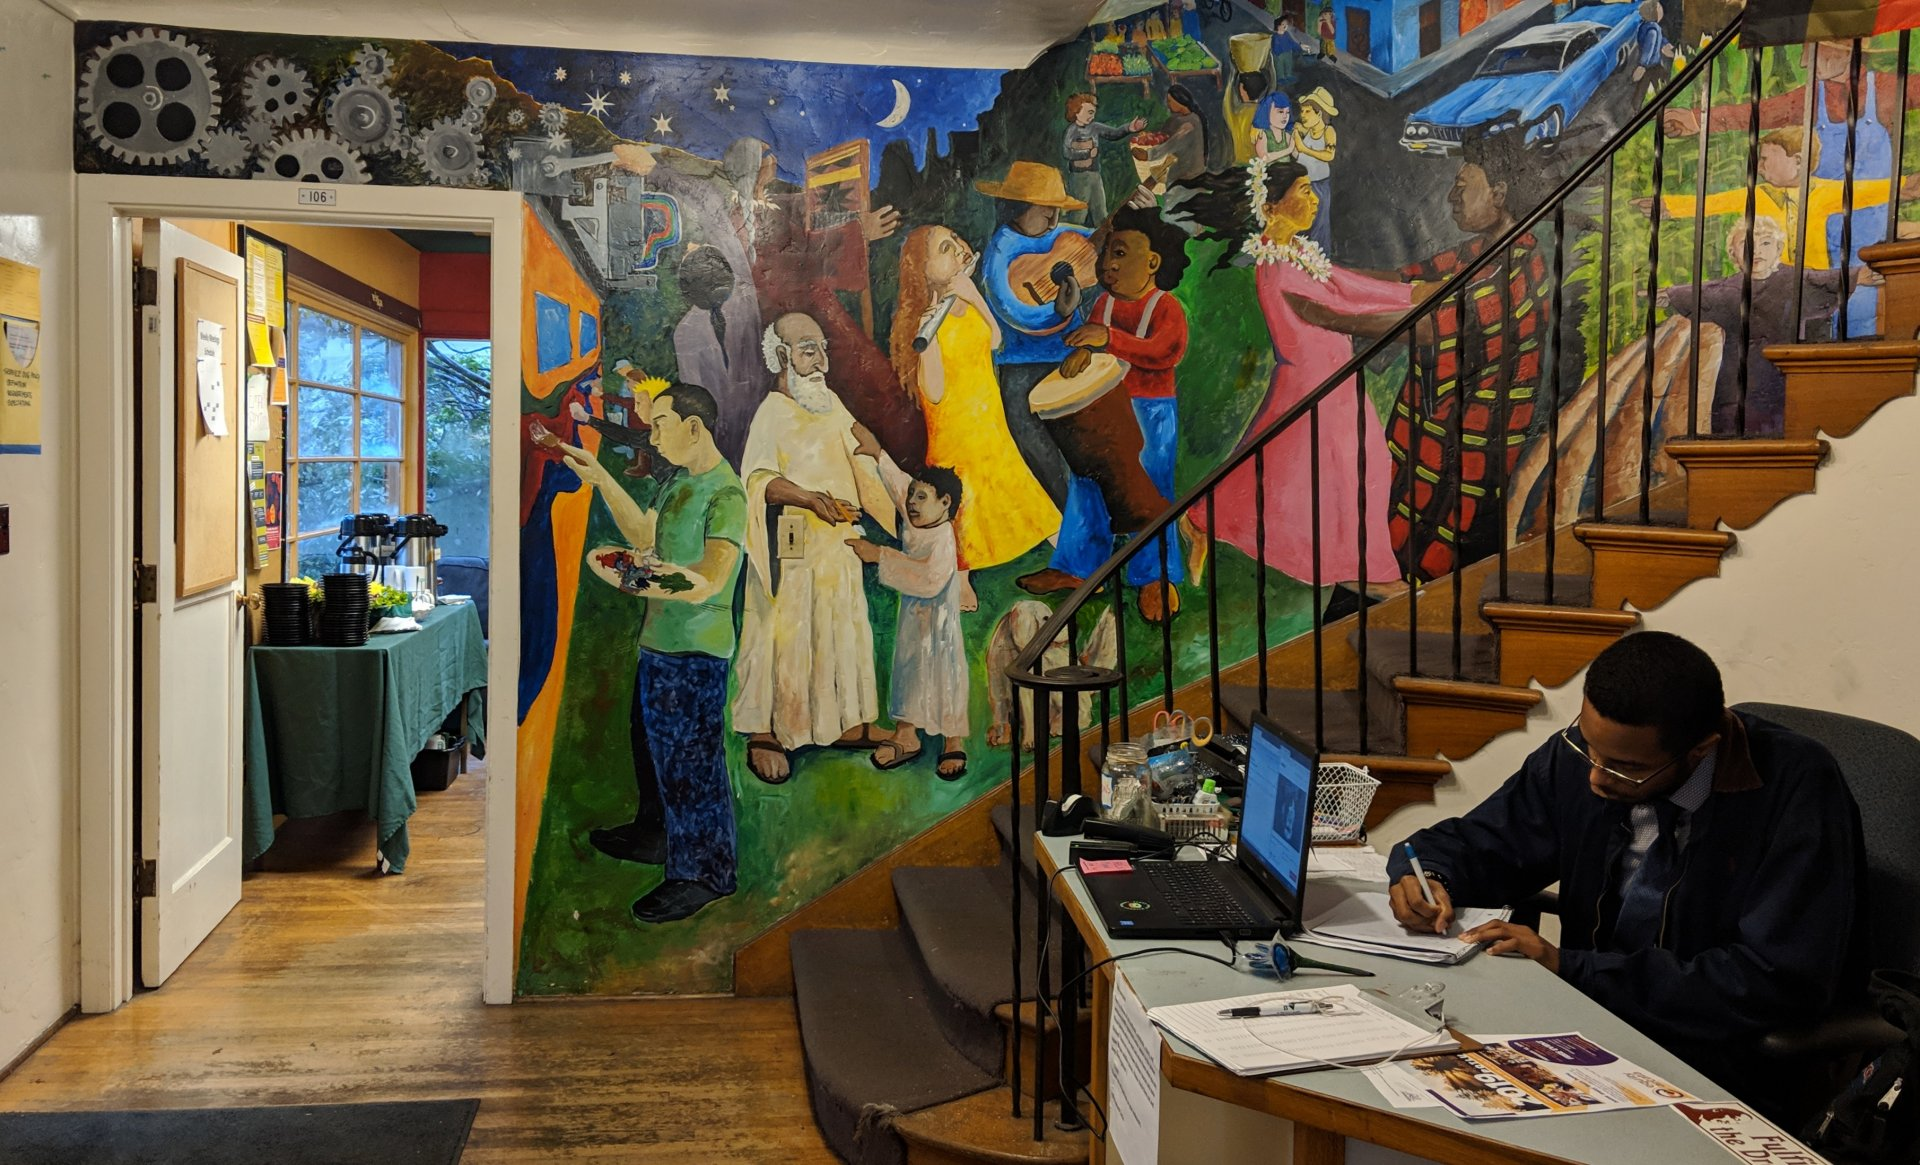 The interior of the MCC is decorated with murals depicting the diverse range of cultures that funnel into our campus. Cameron Rodriguez has been working at MCC for about a year. Photo by Jett Williams